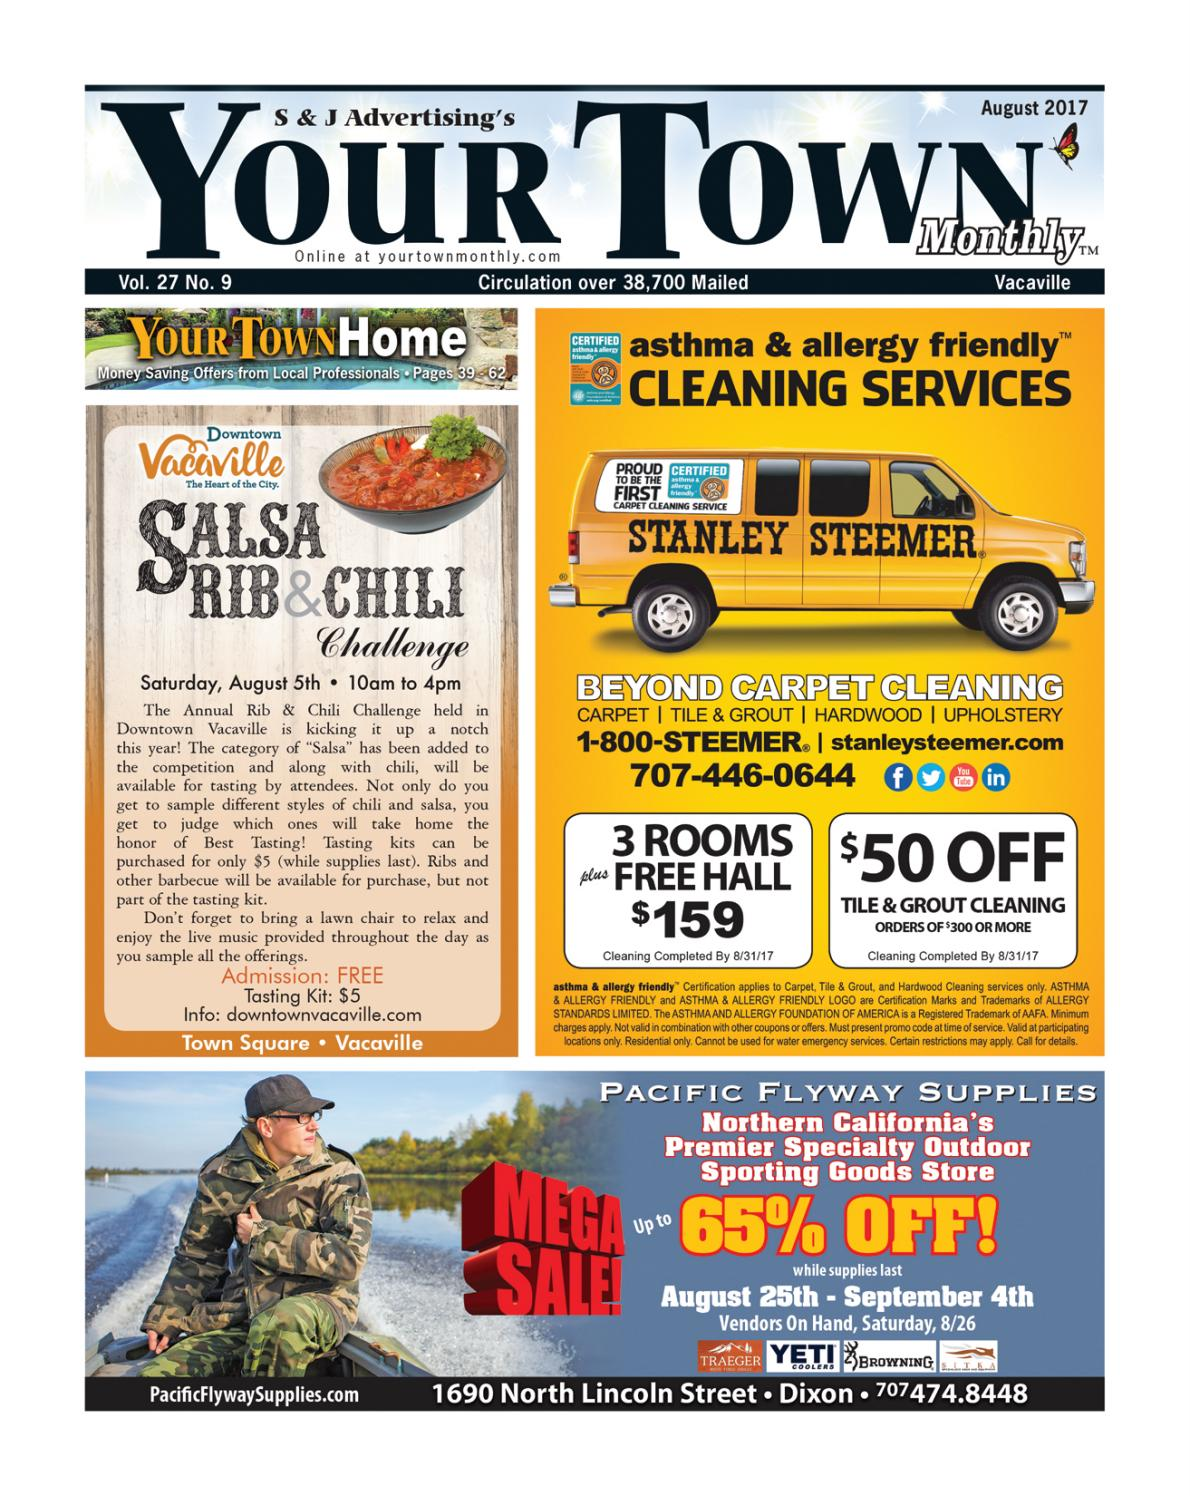 Your Town Monthly: Vacaville August 2017 by Your Town Monthly - issuu